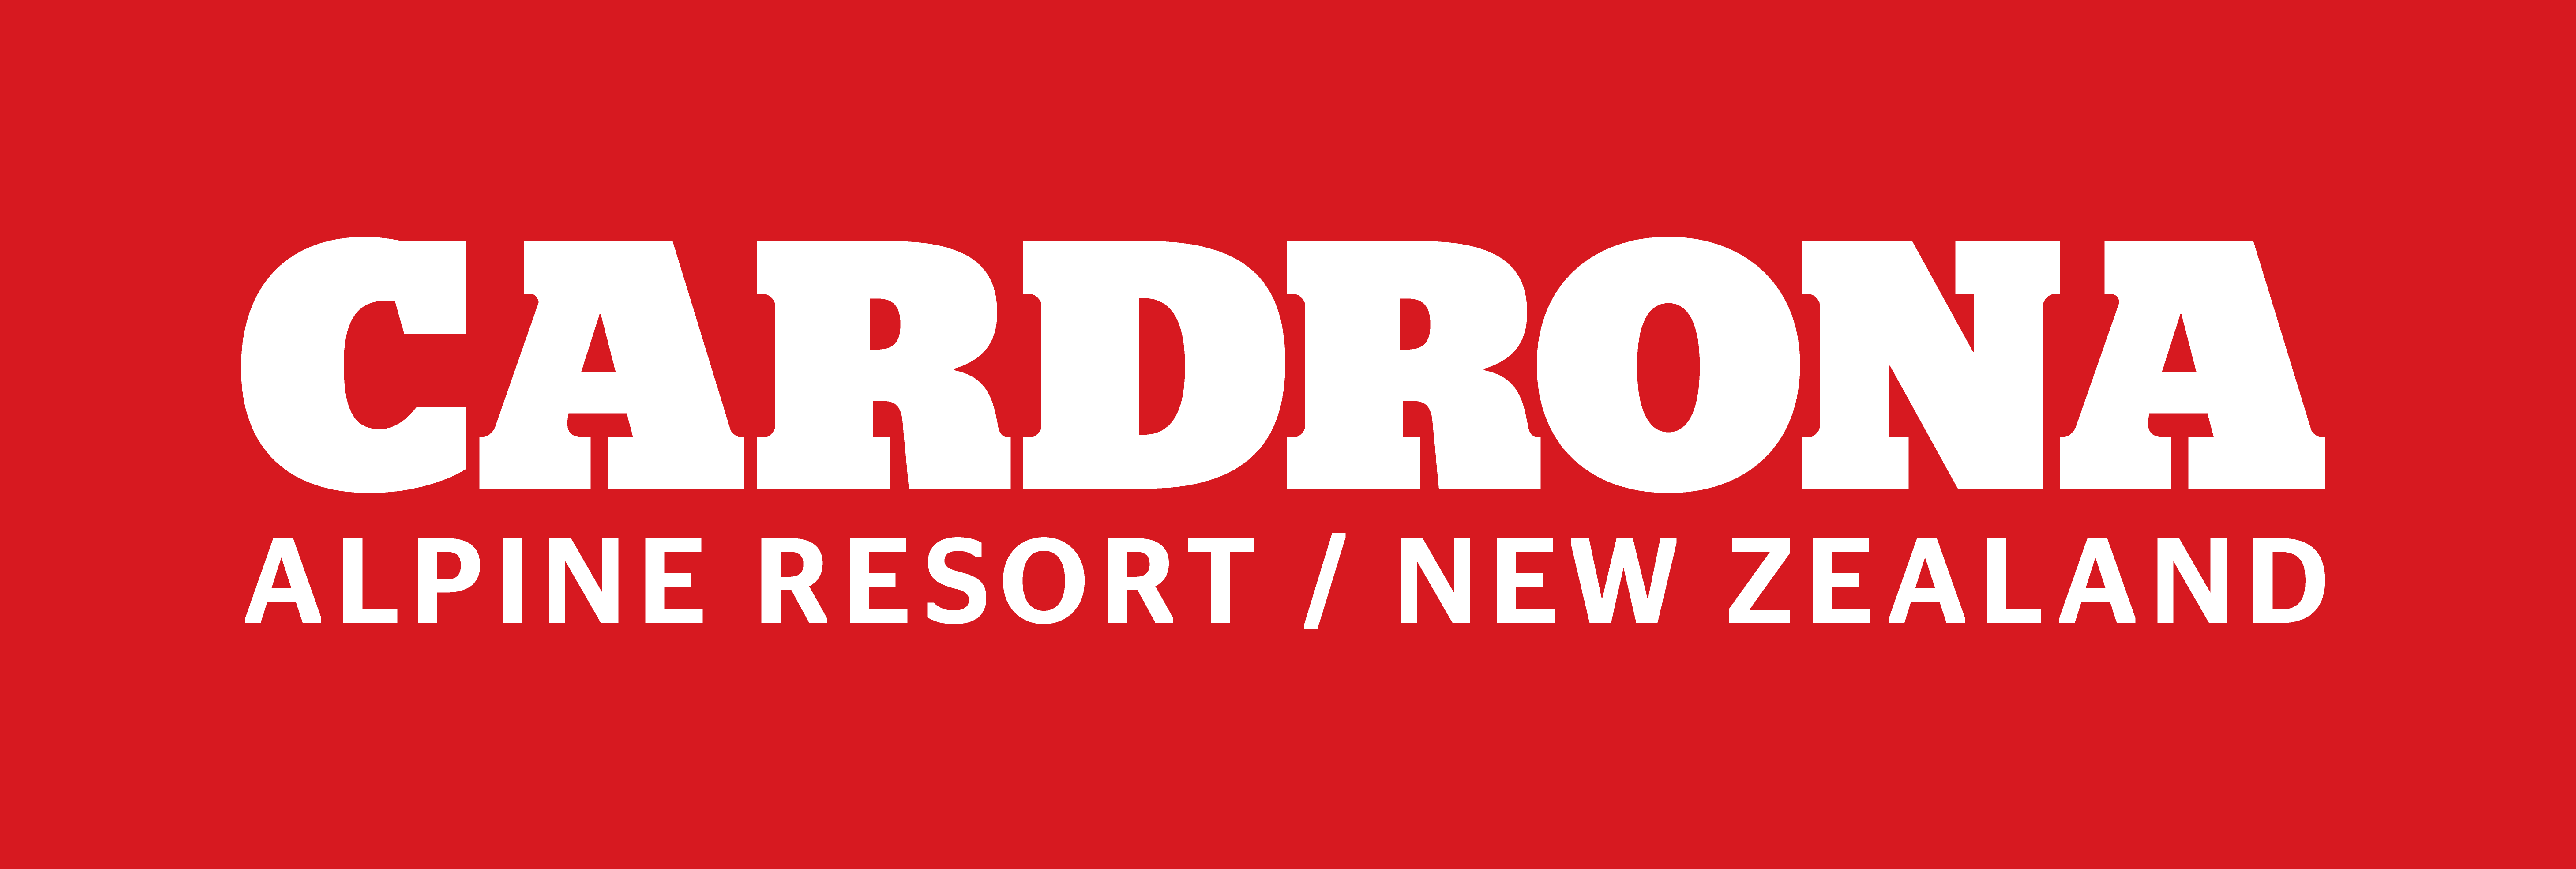 Cardrona Corporate Logo RED